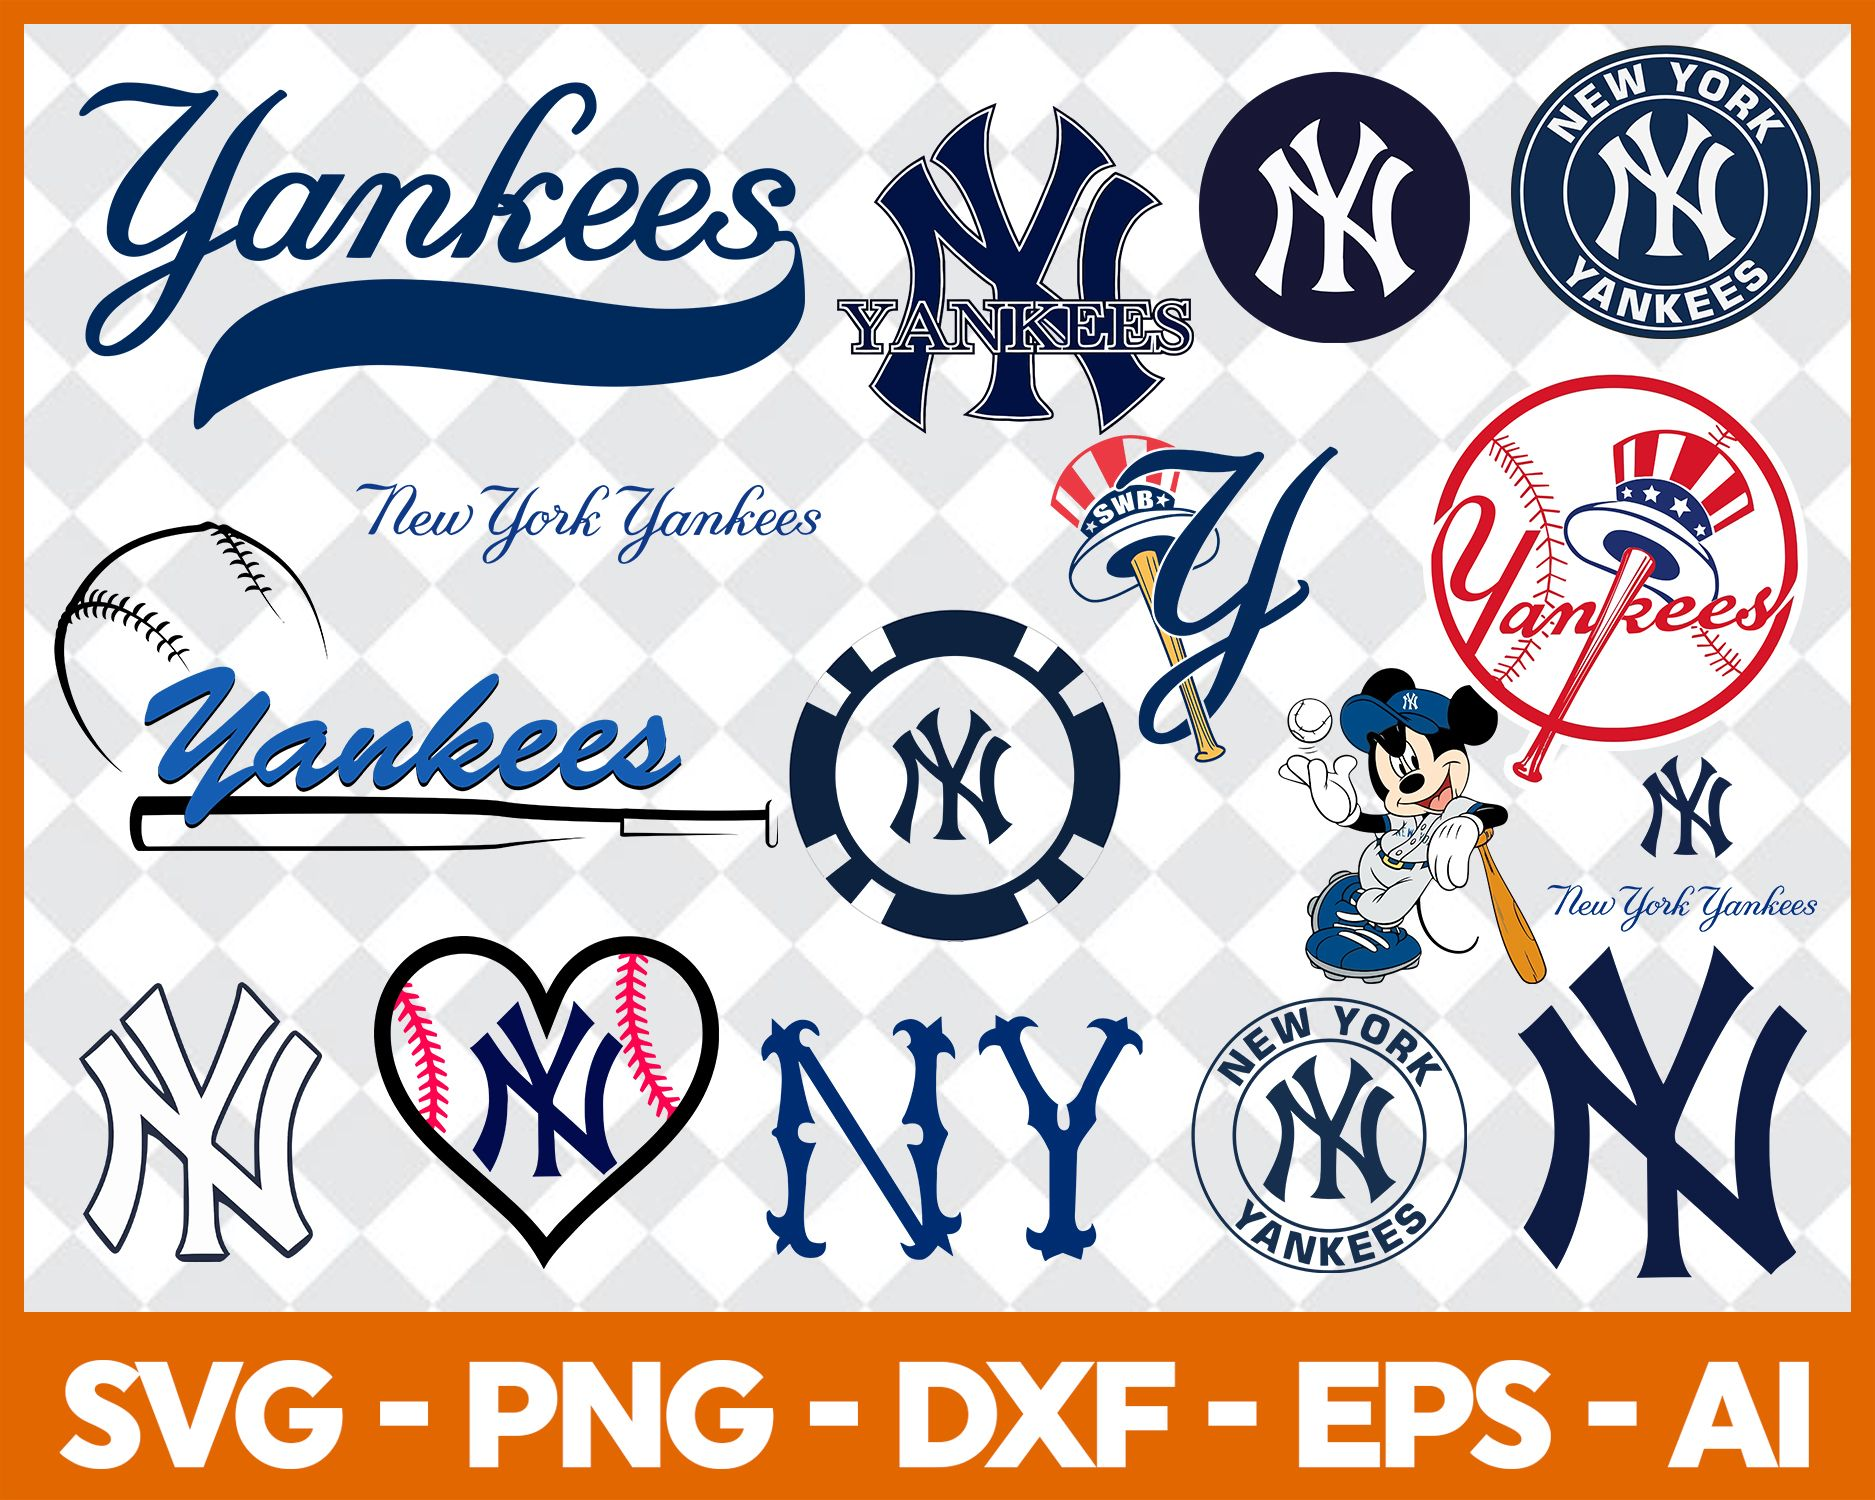 New York Yankees Svg Svg Files For Silhouette Files For Cricut Svg Dxf Eps Png Instant Download In 2020 New York Yankees Svg New York Yankees Logo